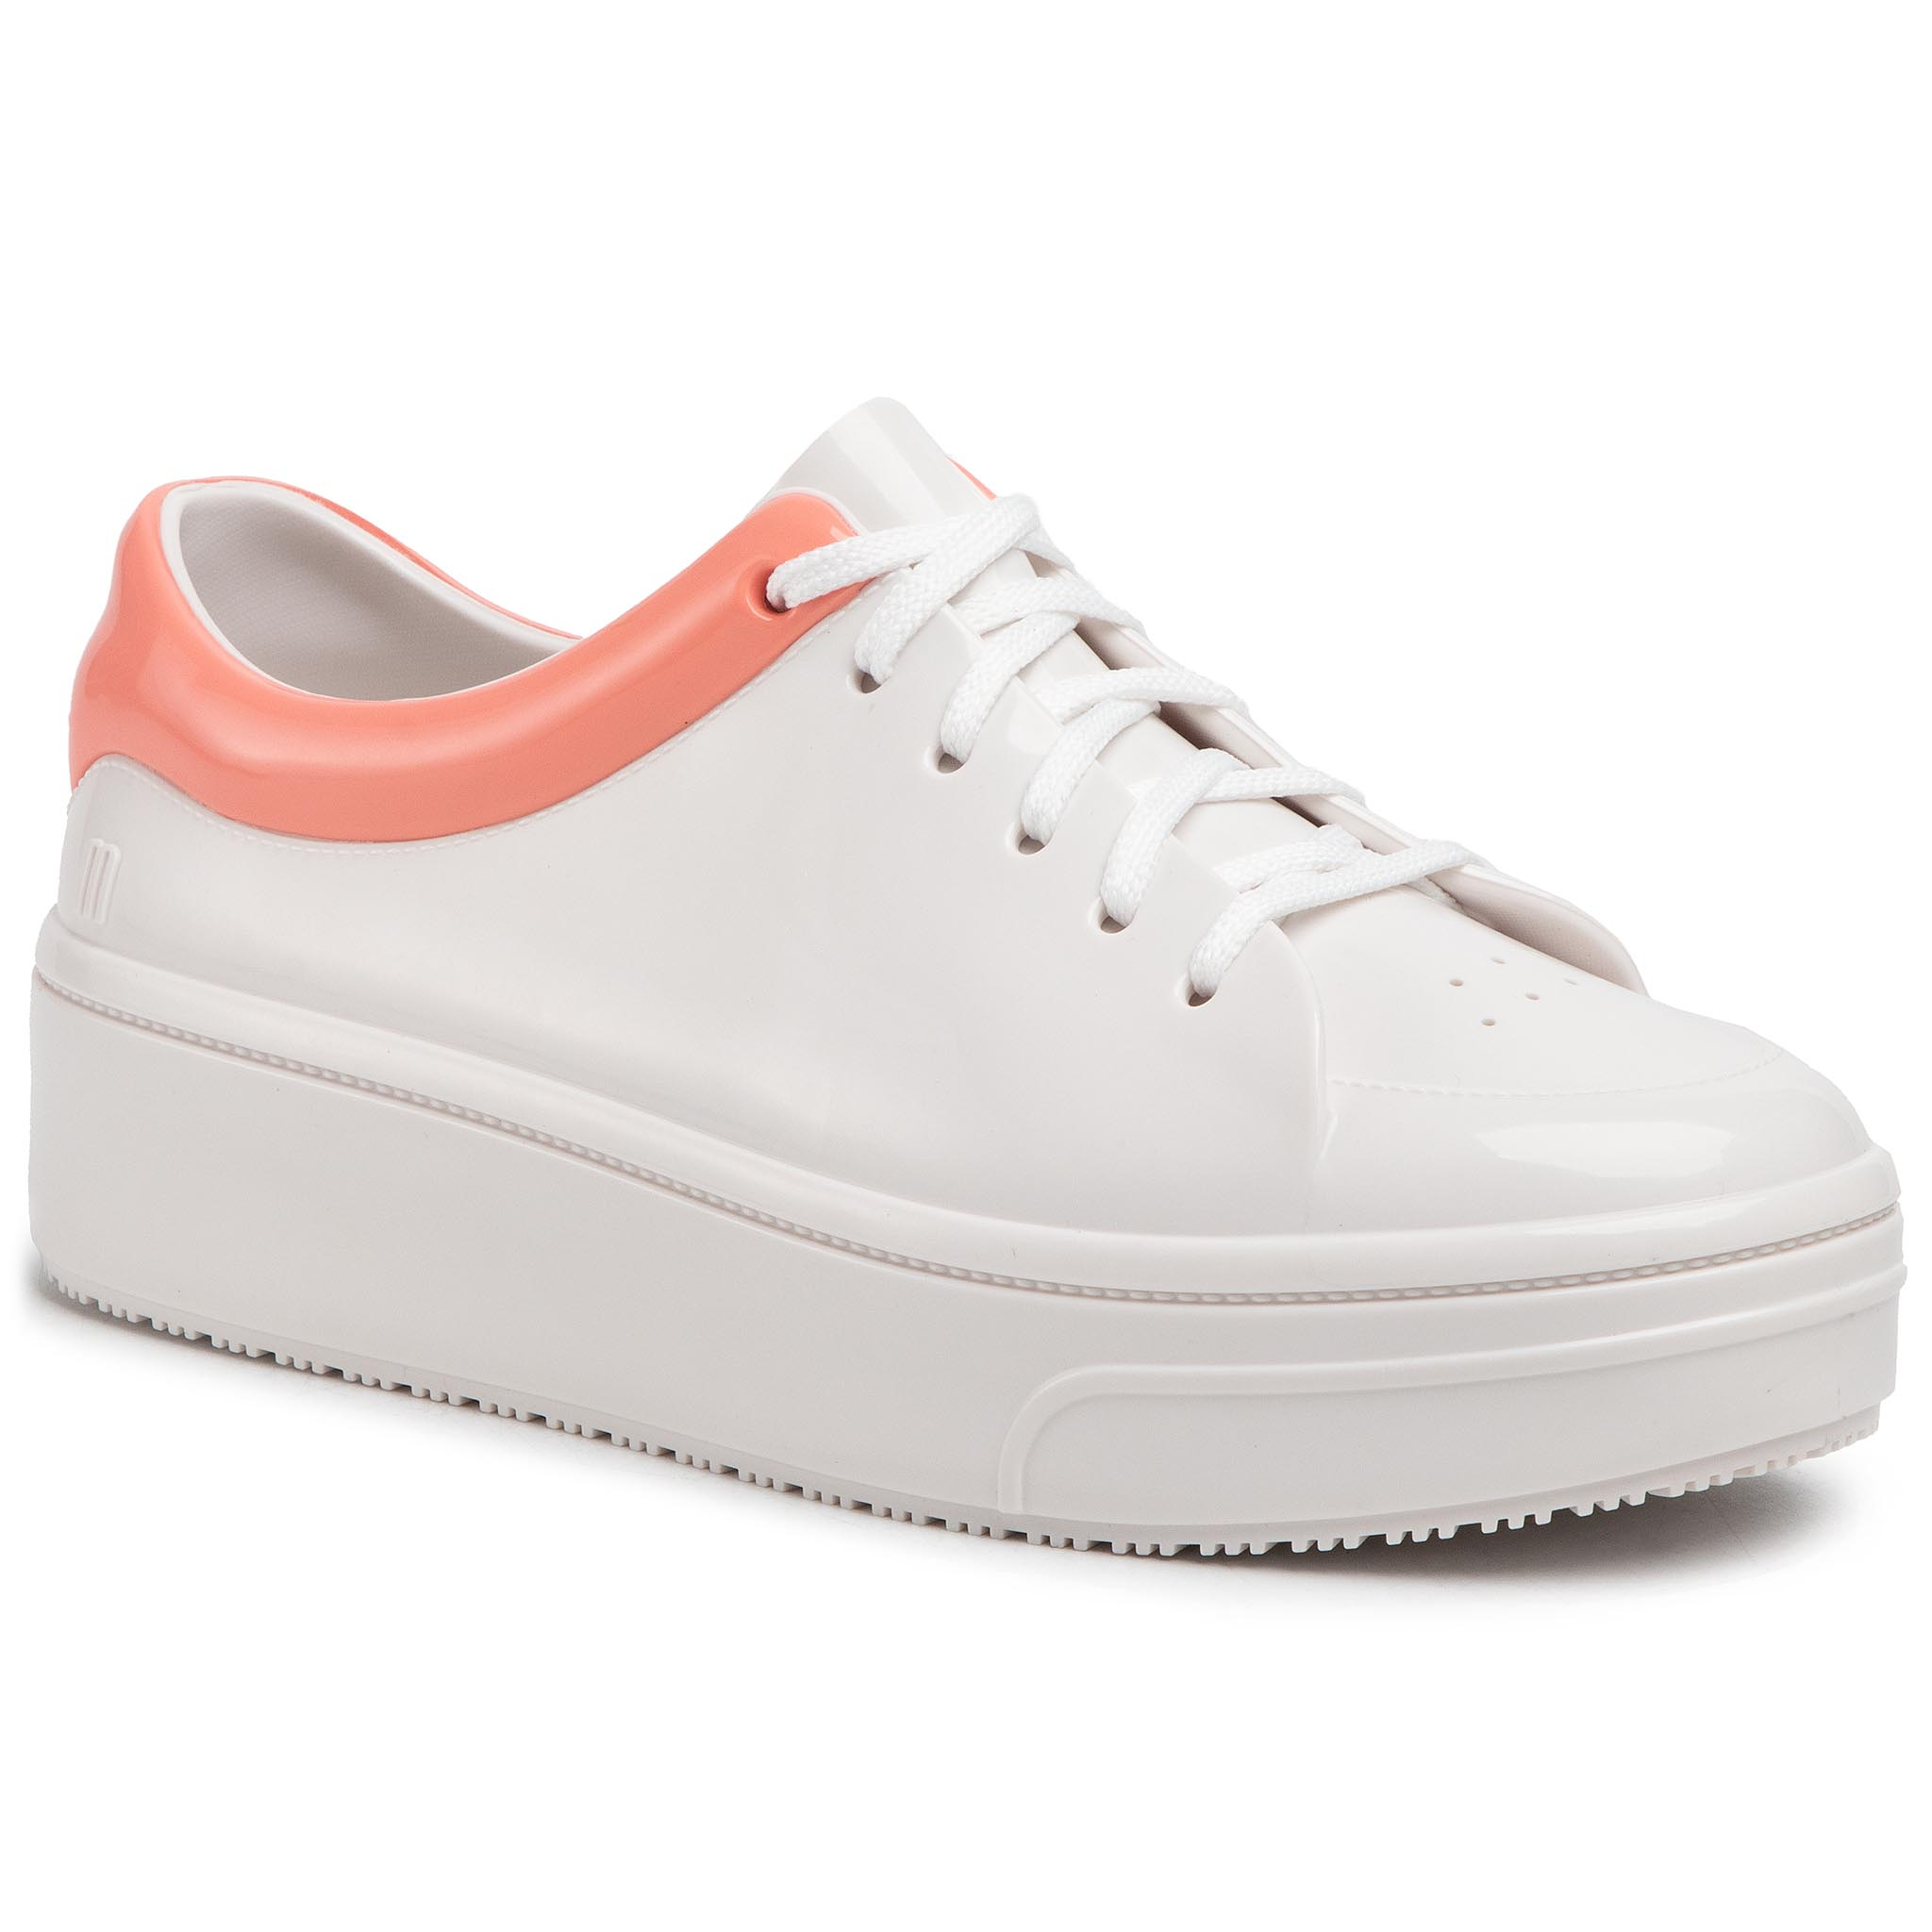 Sneakers MELISSA - Mellow Ad 32683 White/Pink 50552